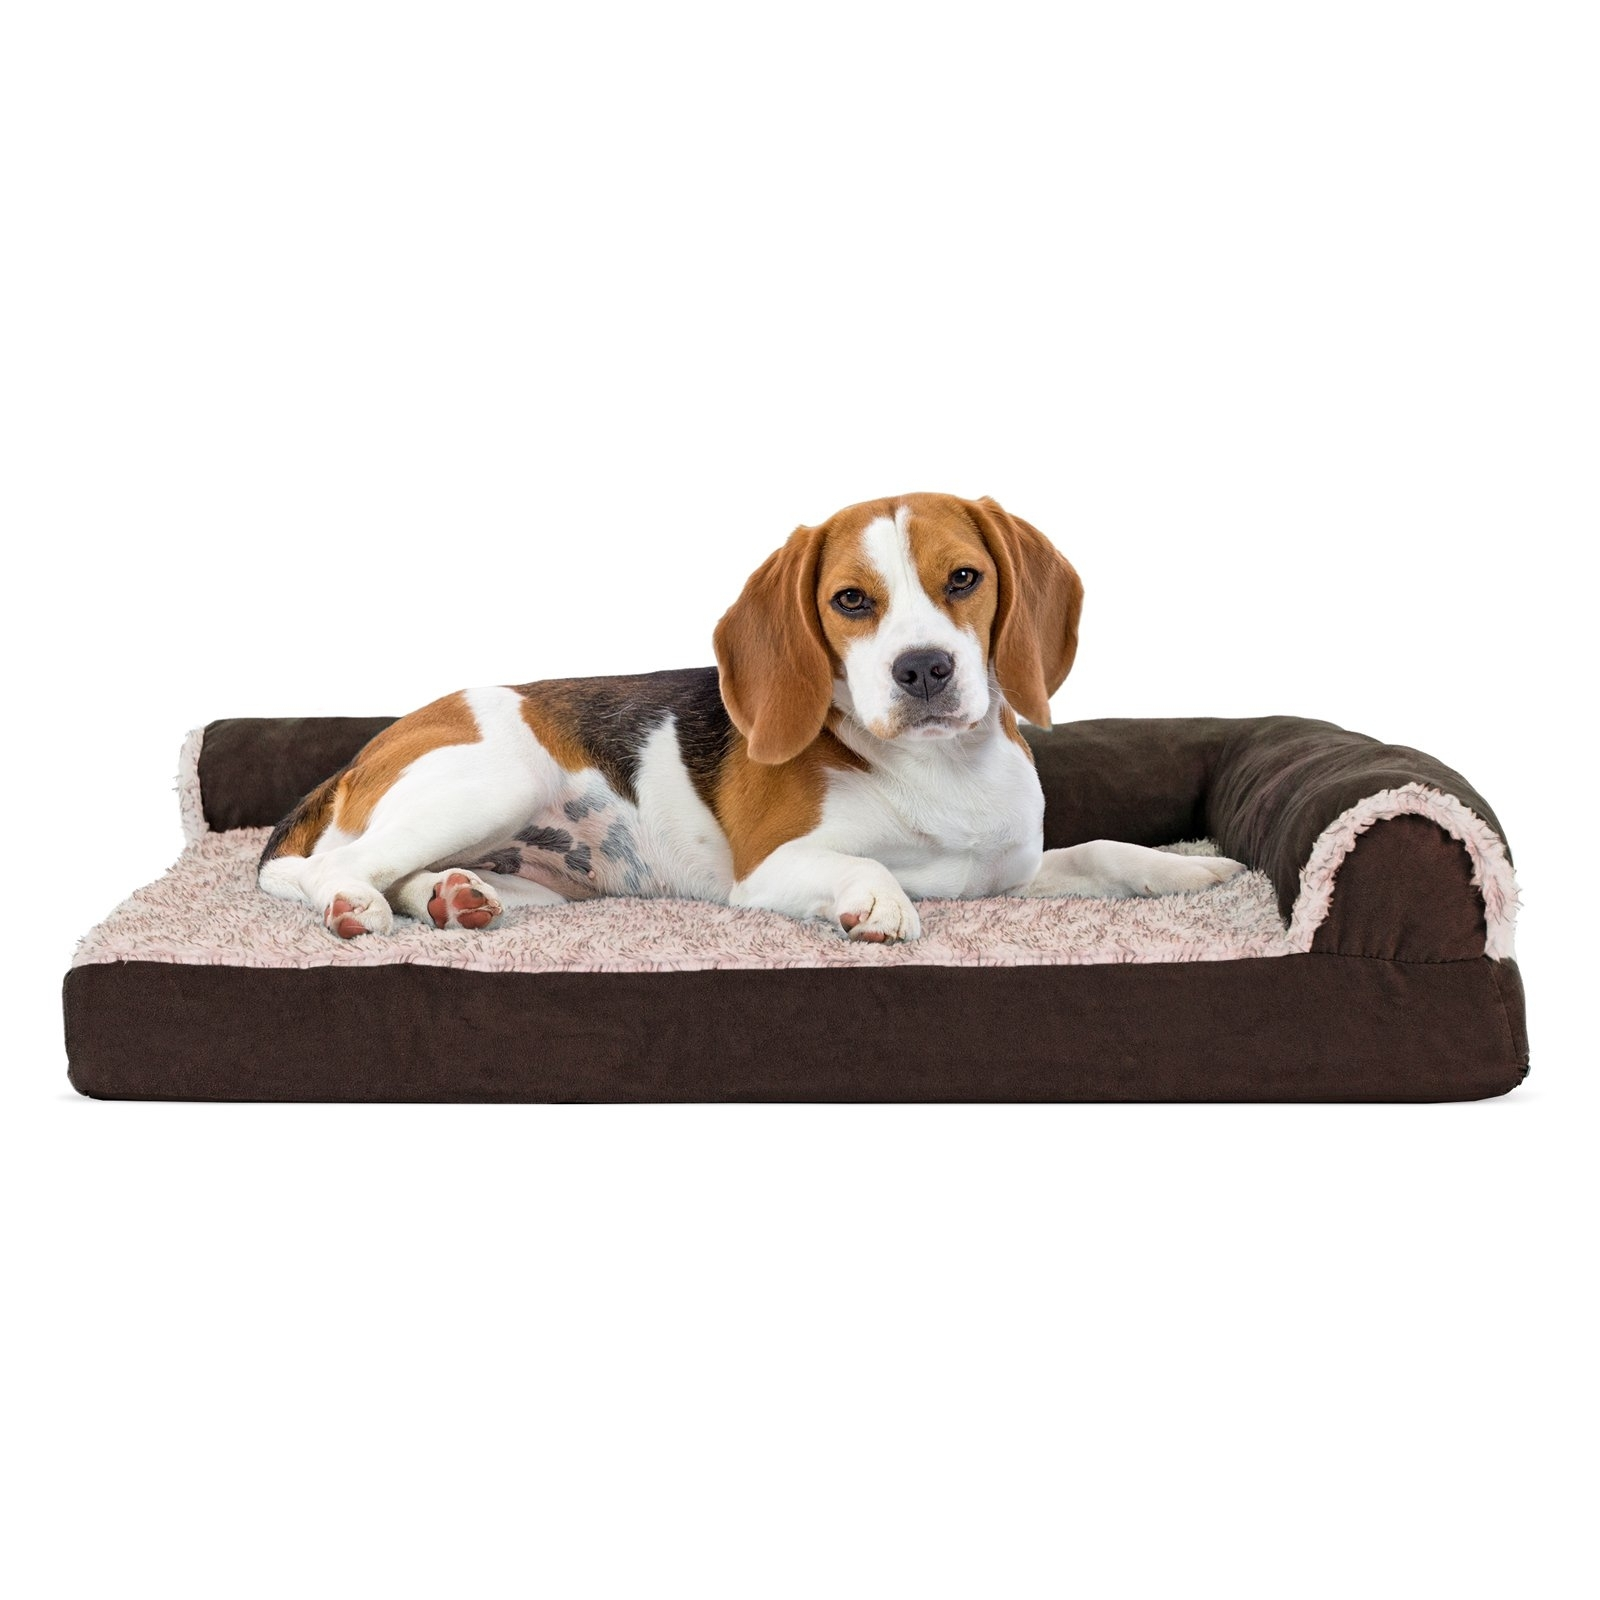 Furhaven Two Tone Faux Fur & Suede Orthopedic Deluxe Chaise Lounge Regarding Most Recently Released Dog Chaise Lounges (View 8 of 15)